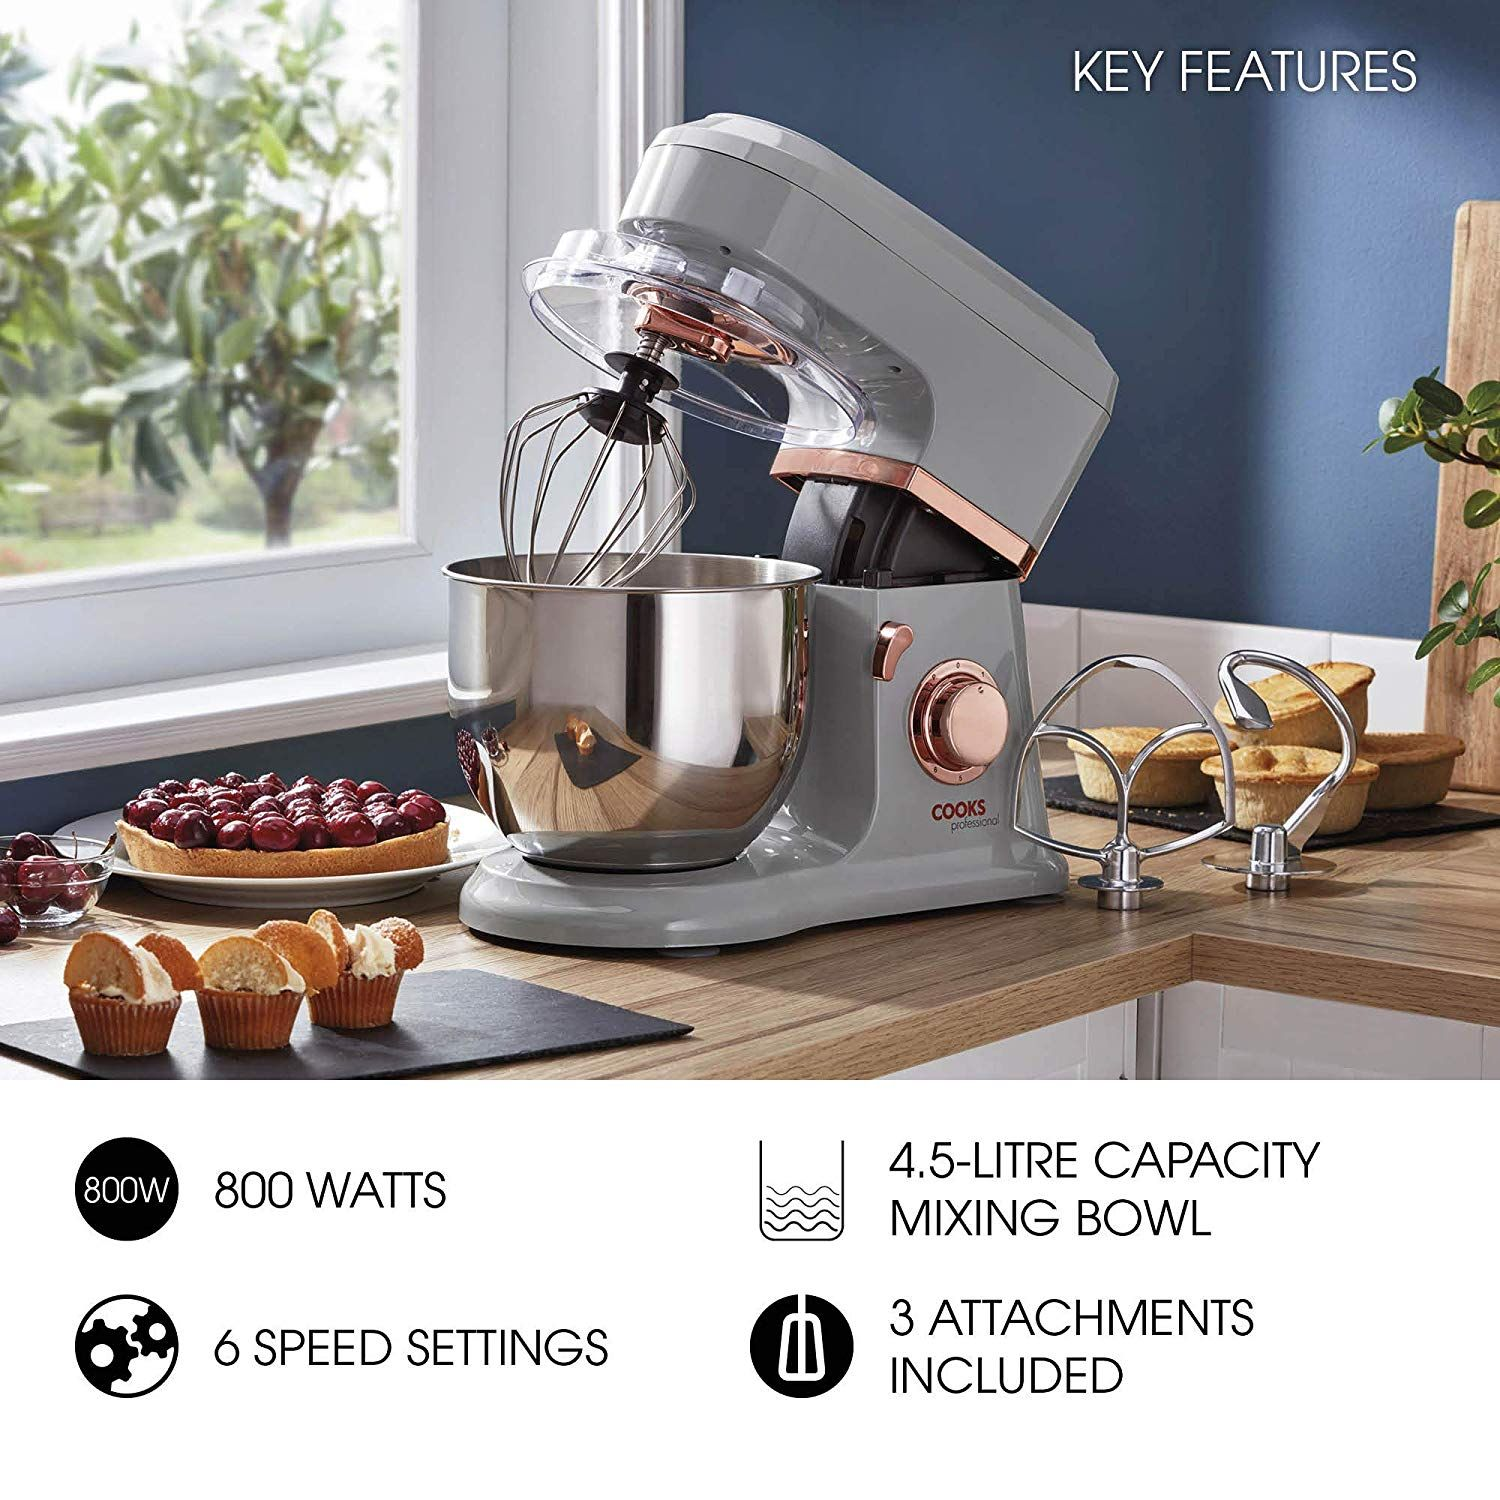 Cooks professional 800w electric kitchen stand food mixer